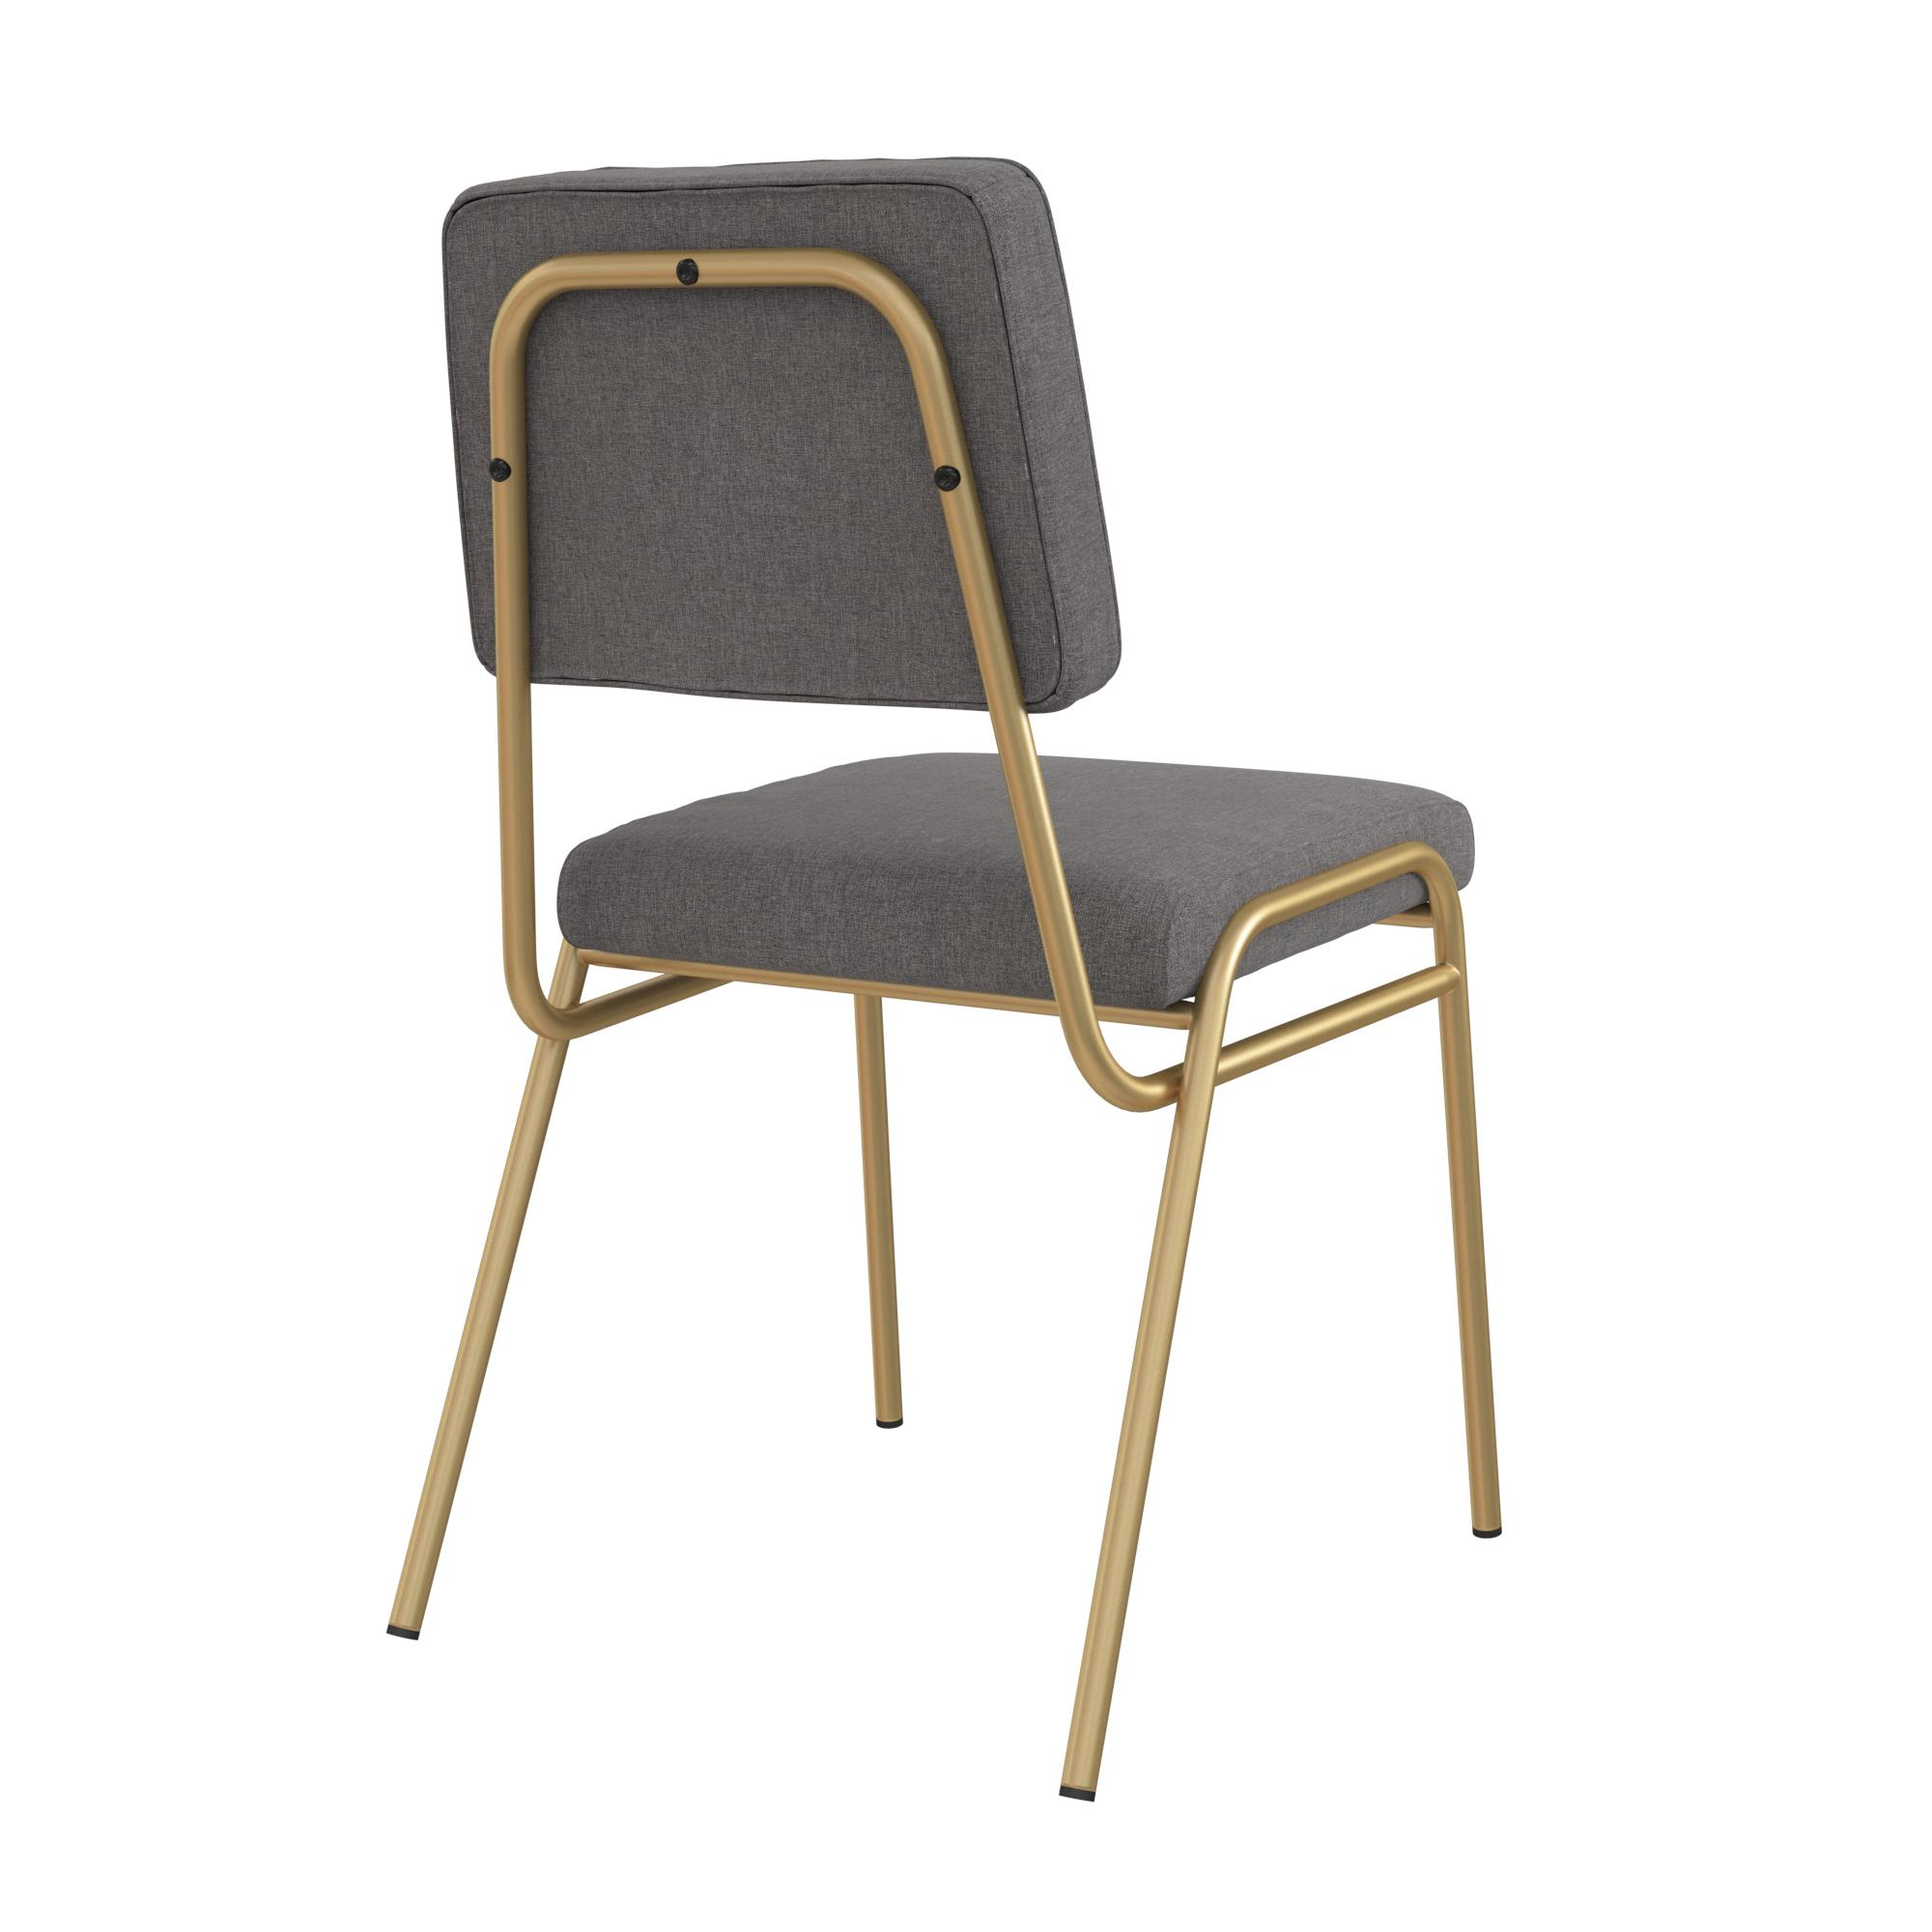 Novogratz Lex Upholstered Dining Chair Gold Frame Blue